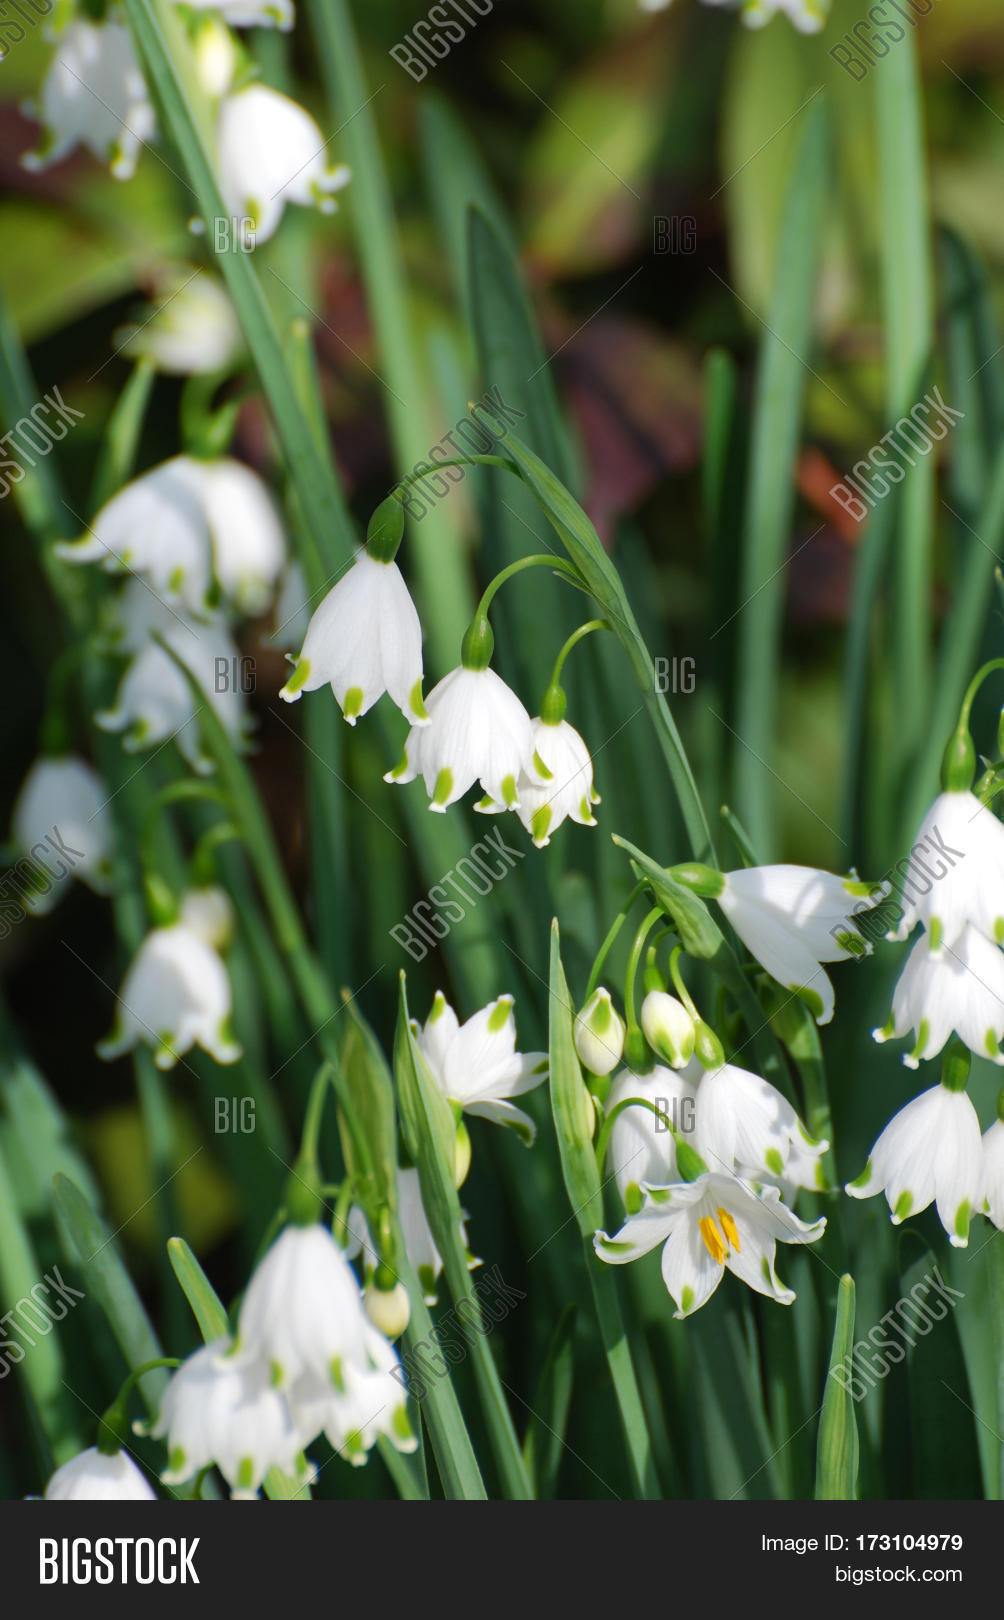 Gorgeous Blooming Snow Image Photo Free Trial Bigstock